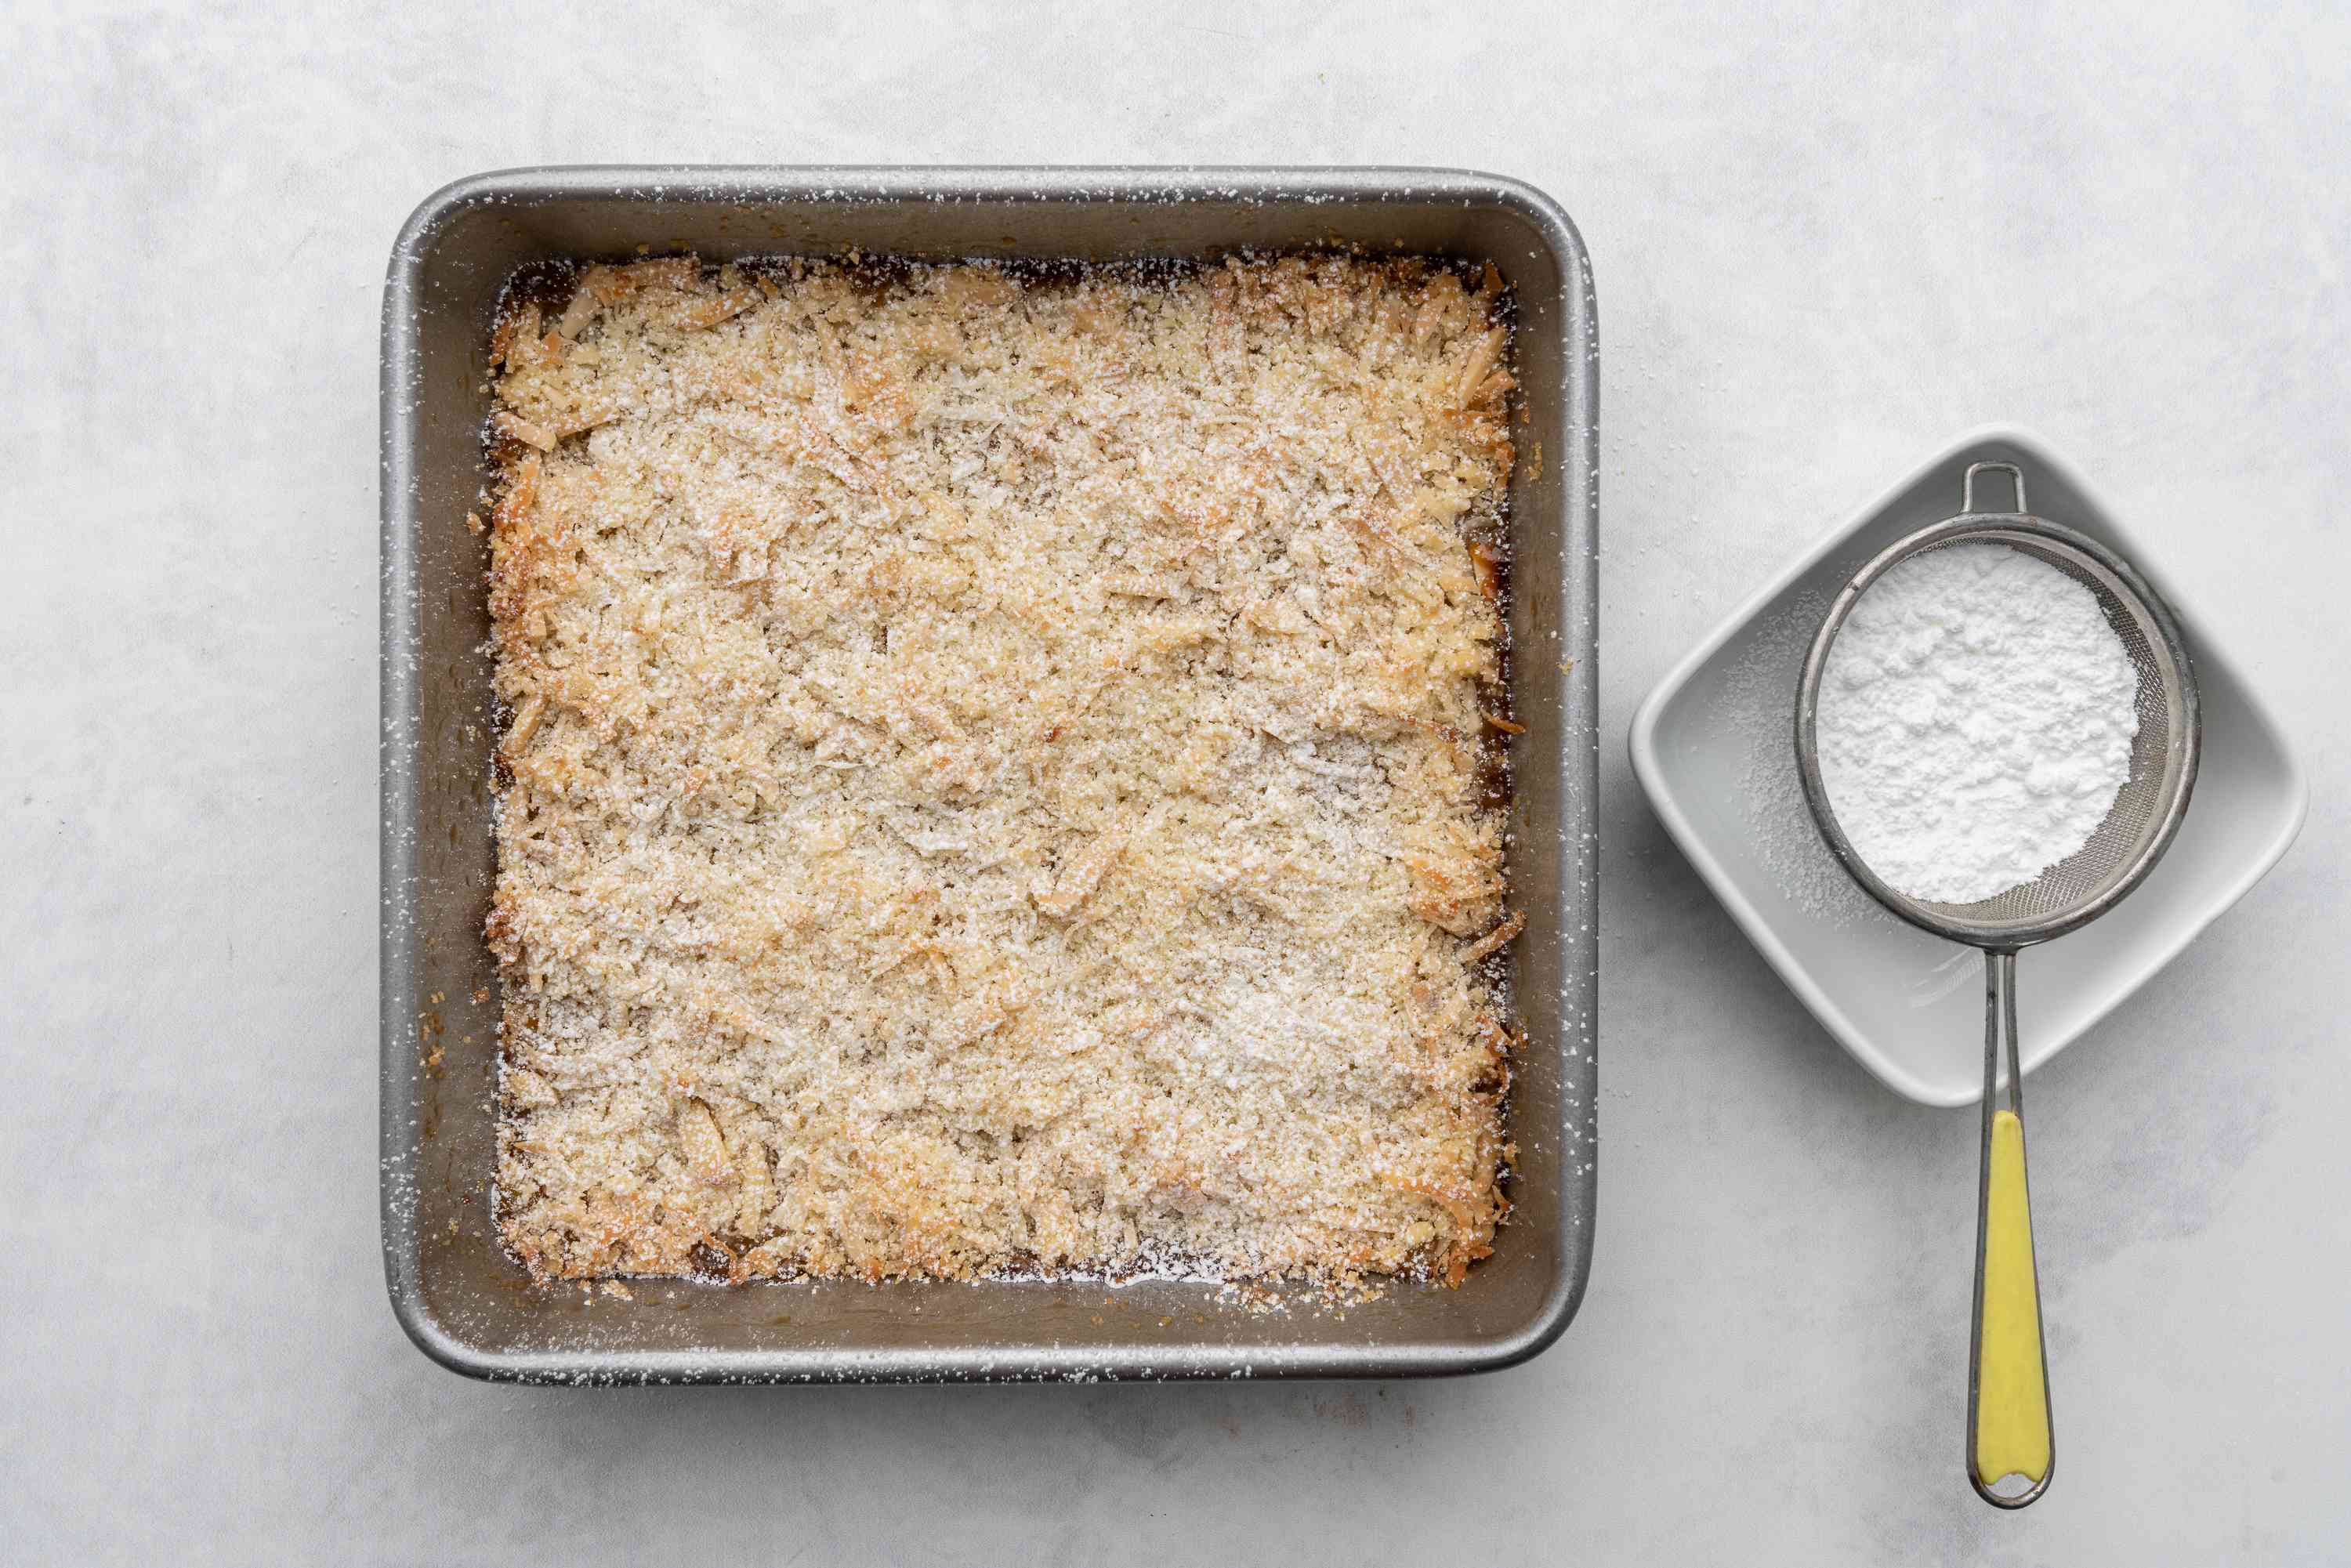 powdered sugar being sifted on top of bars